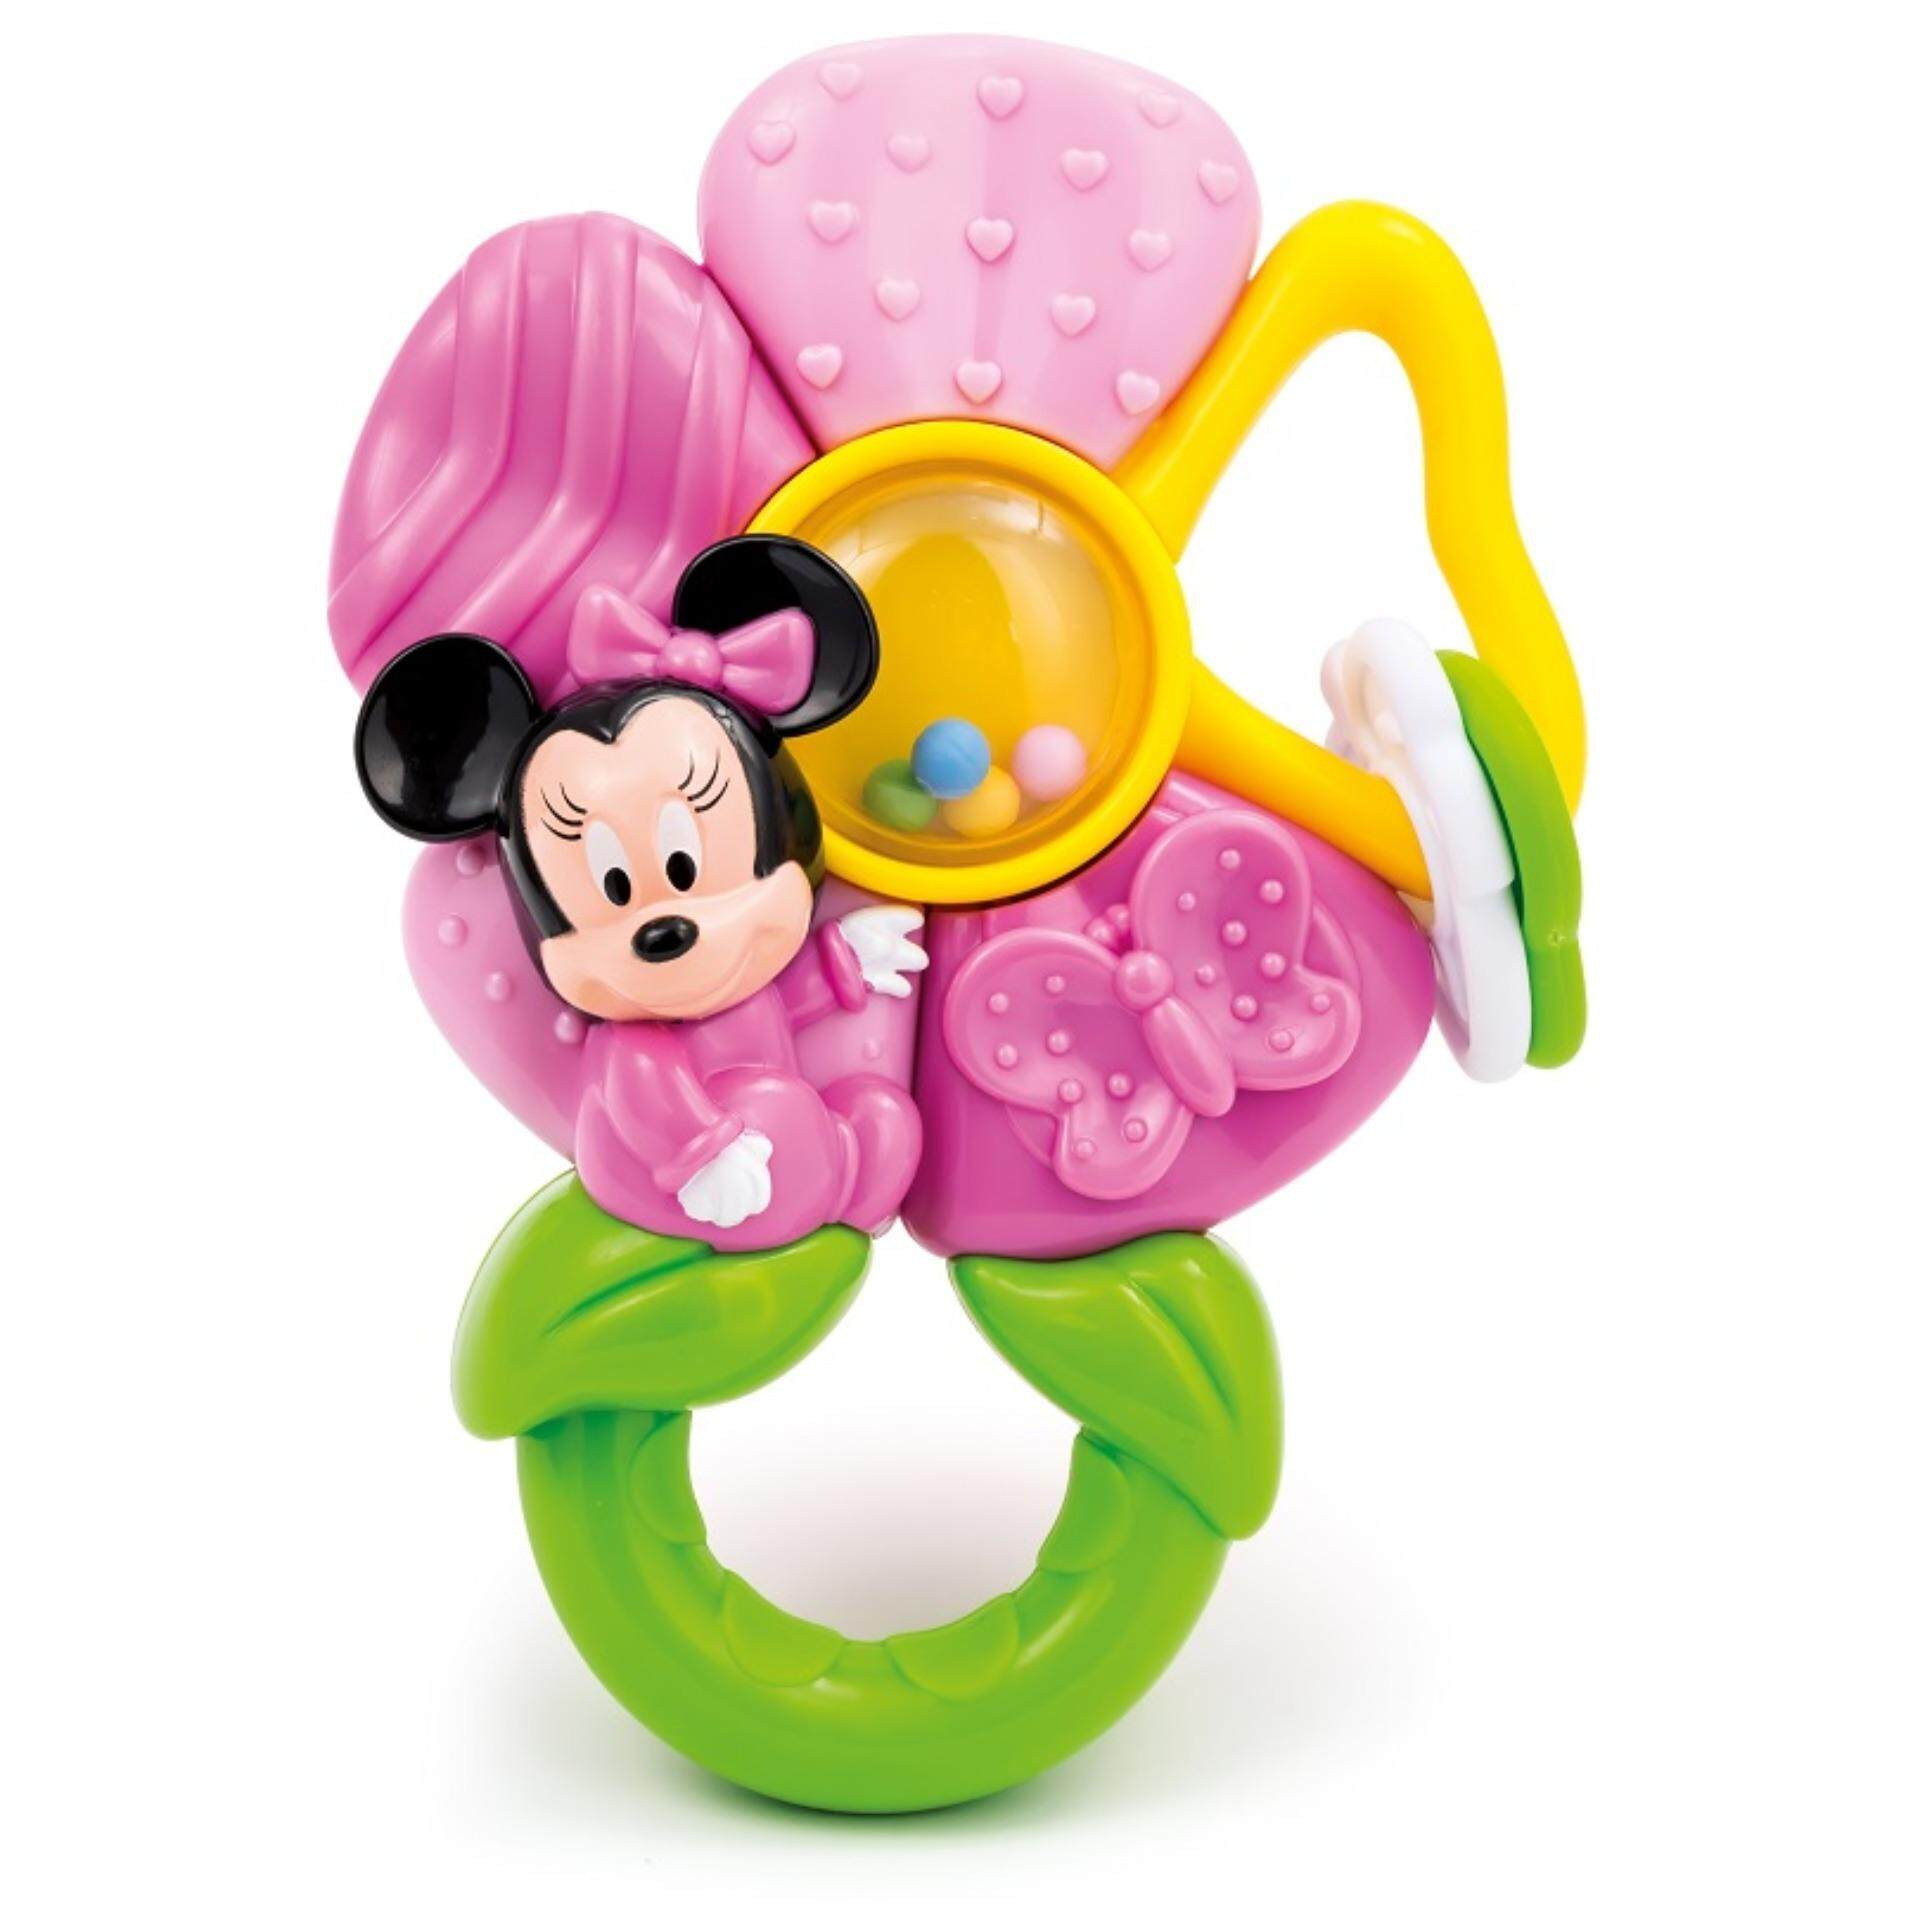 Disney Baby Safety Handbells Developmental Lovely Toys Flower Rattle - Minnie baby toys